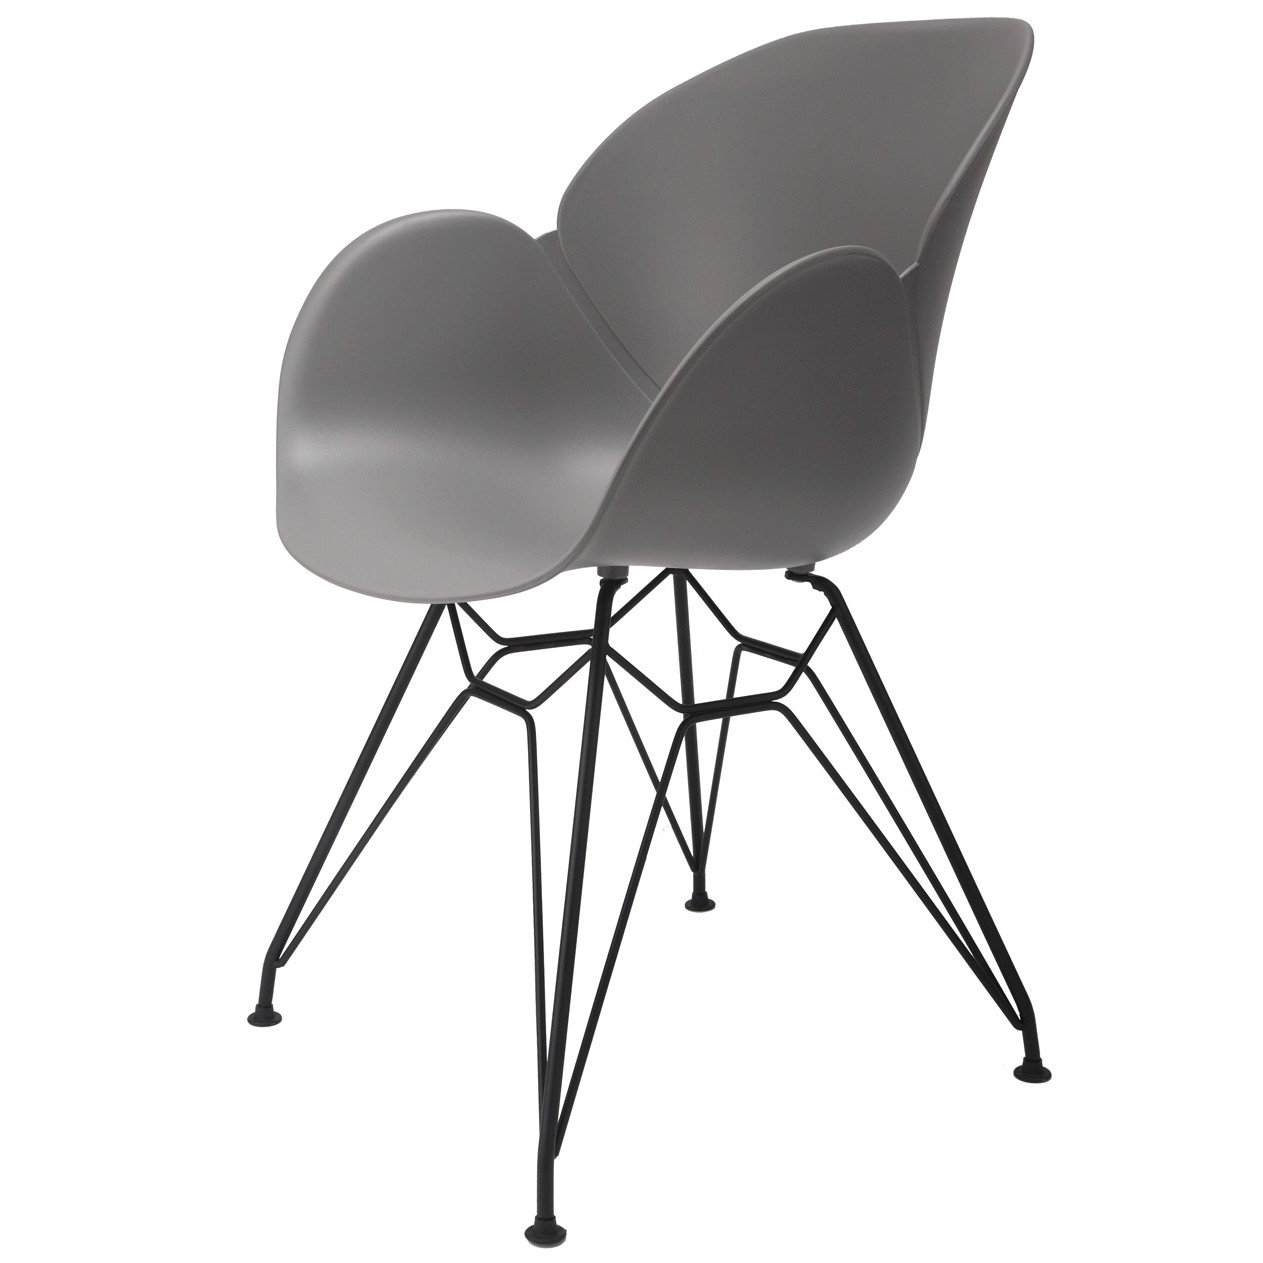 chair steel legs weaving with rope flora gray modern accent dining black